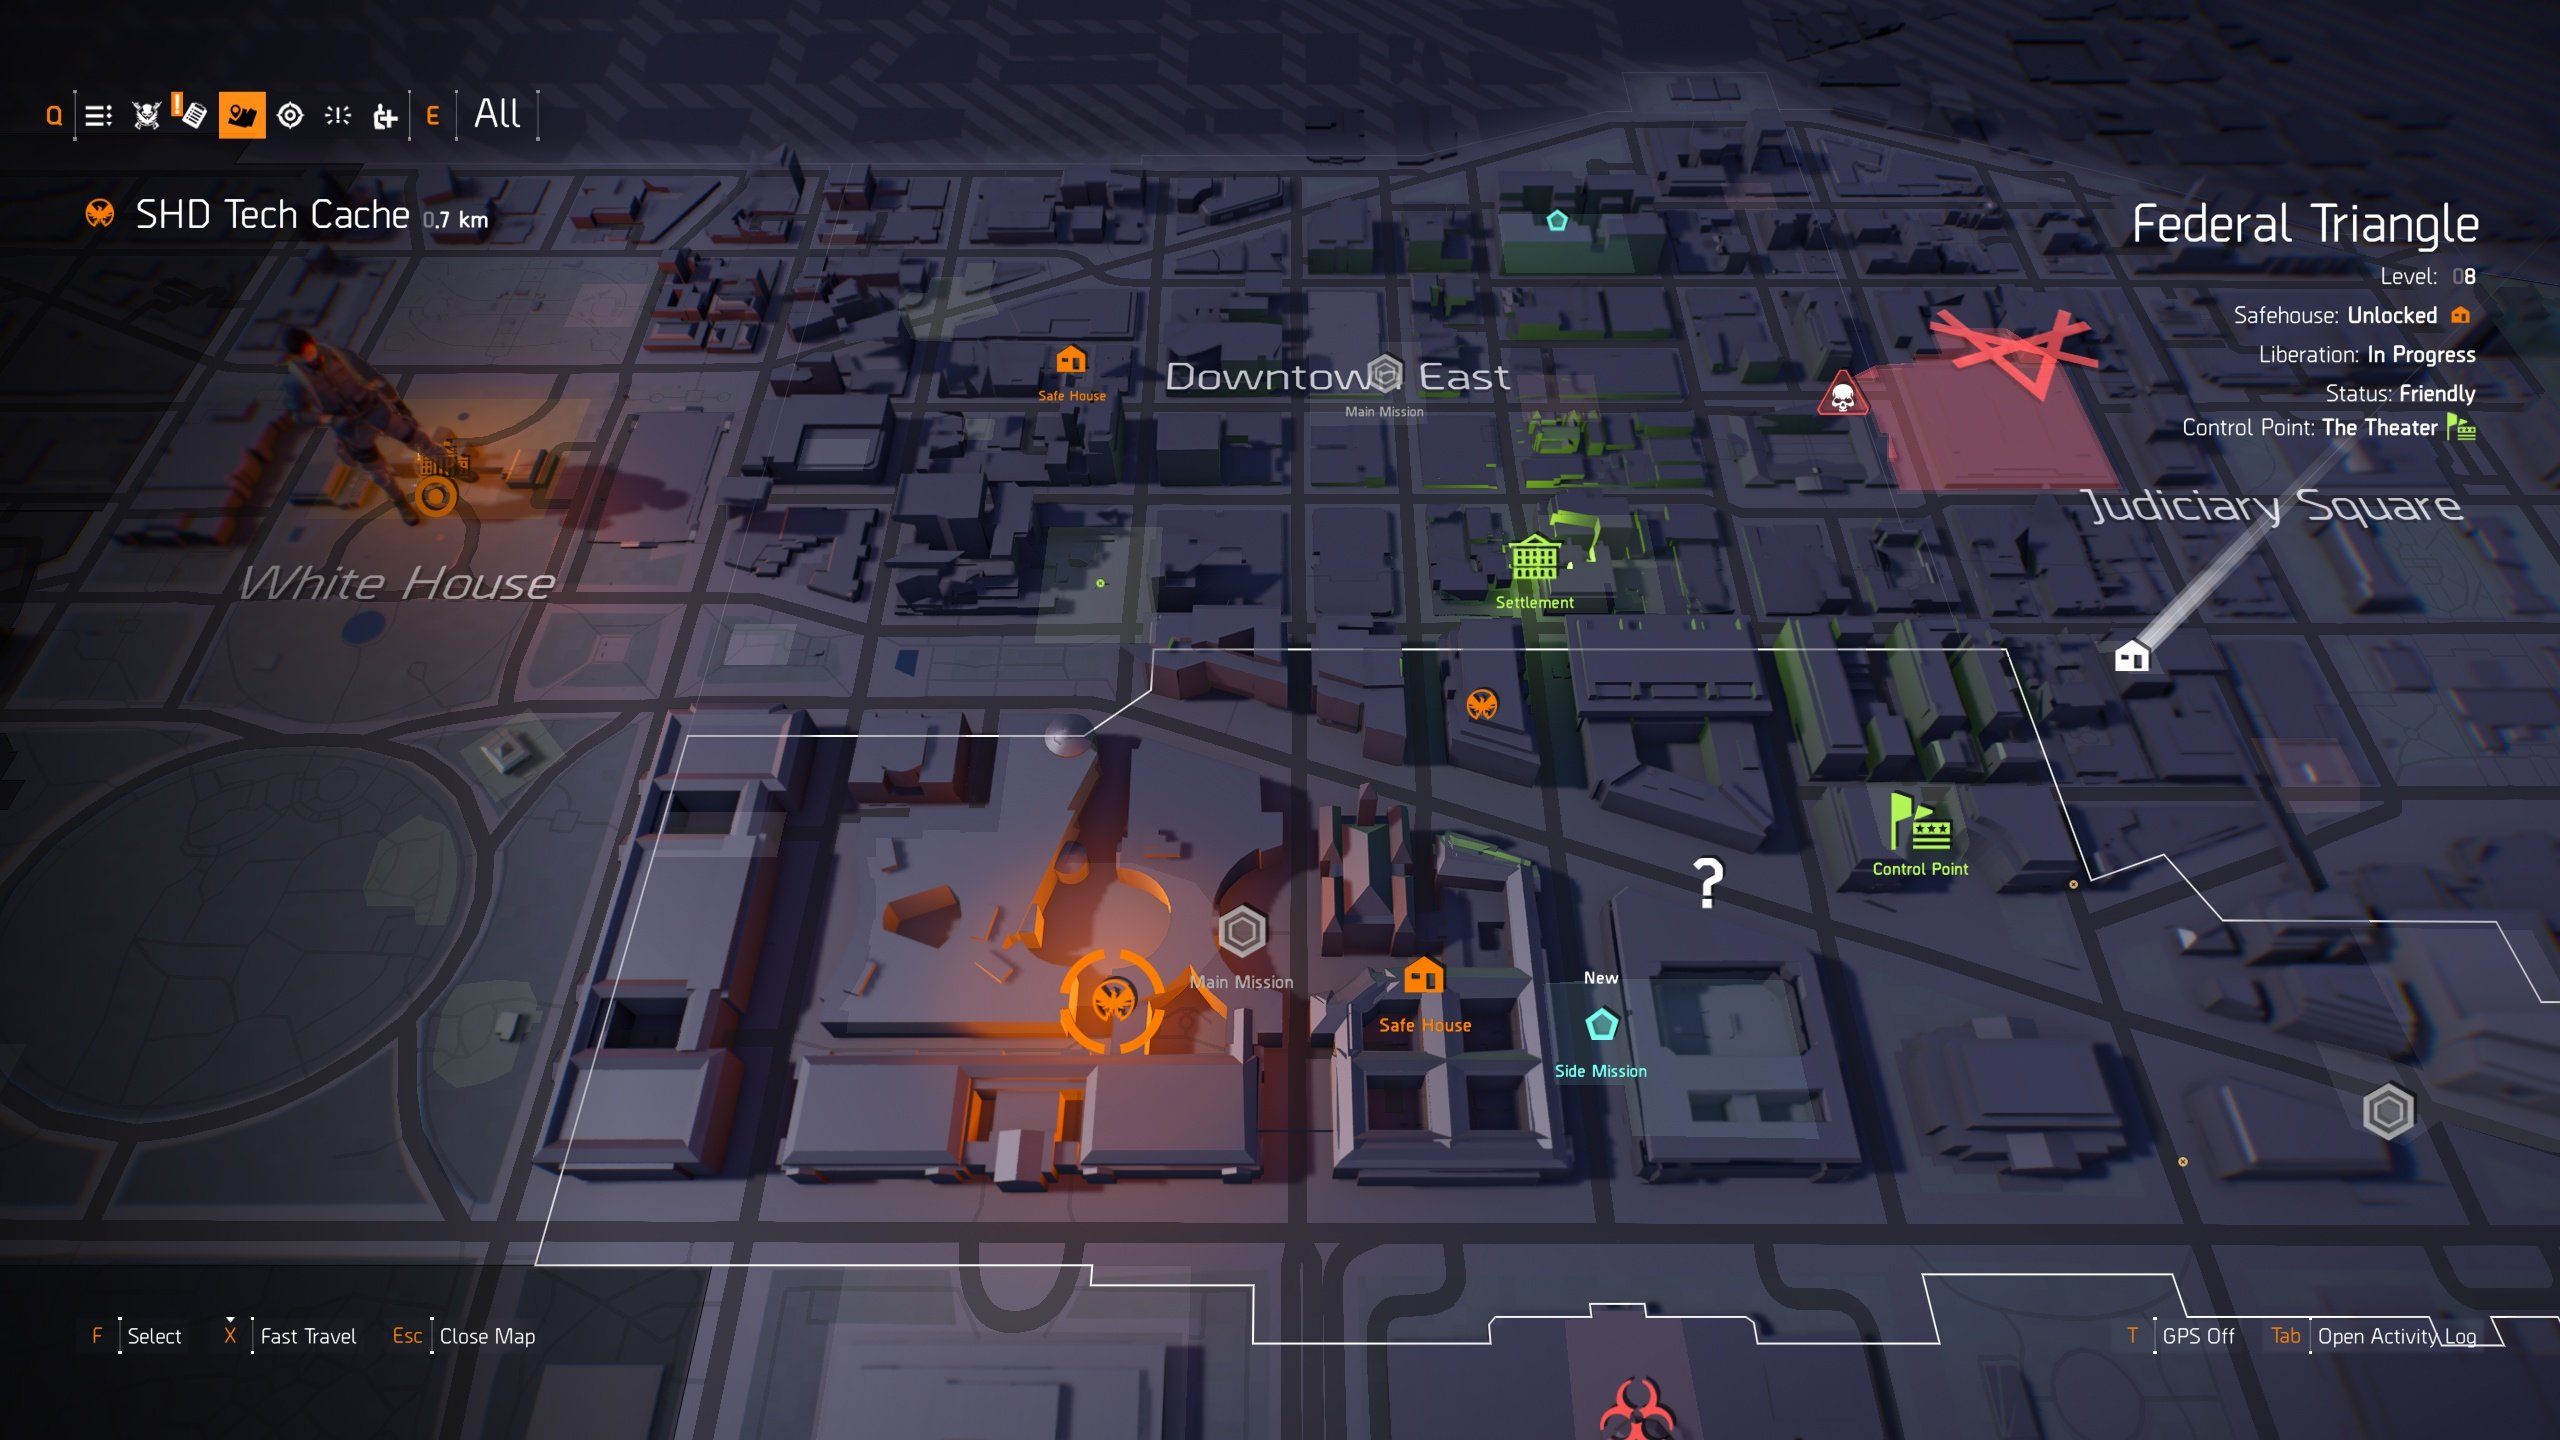 best perks to unlock in The Division 2 - SHD Tech on map